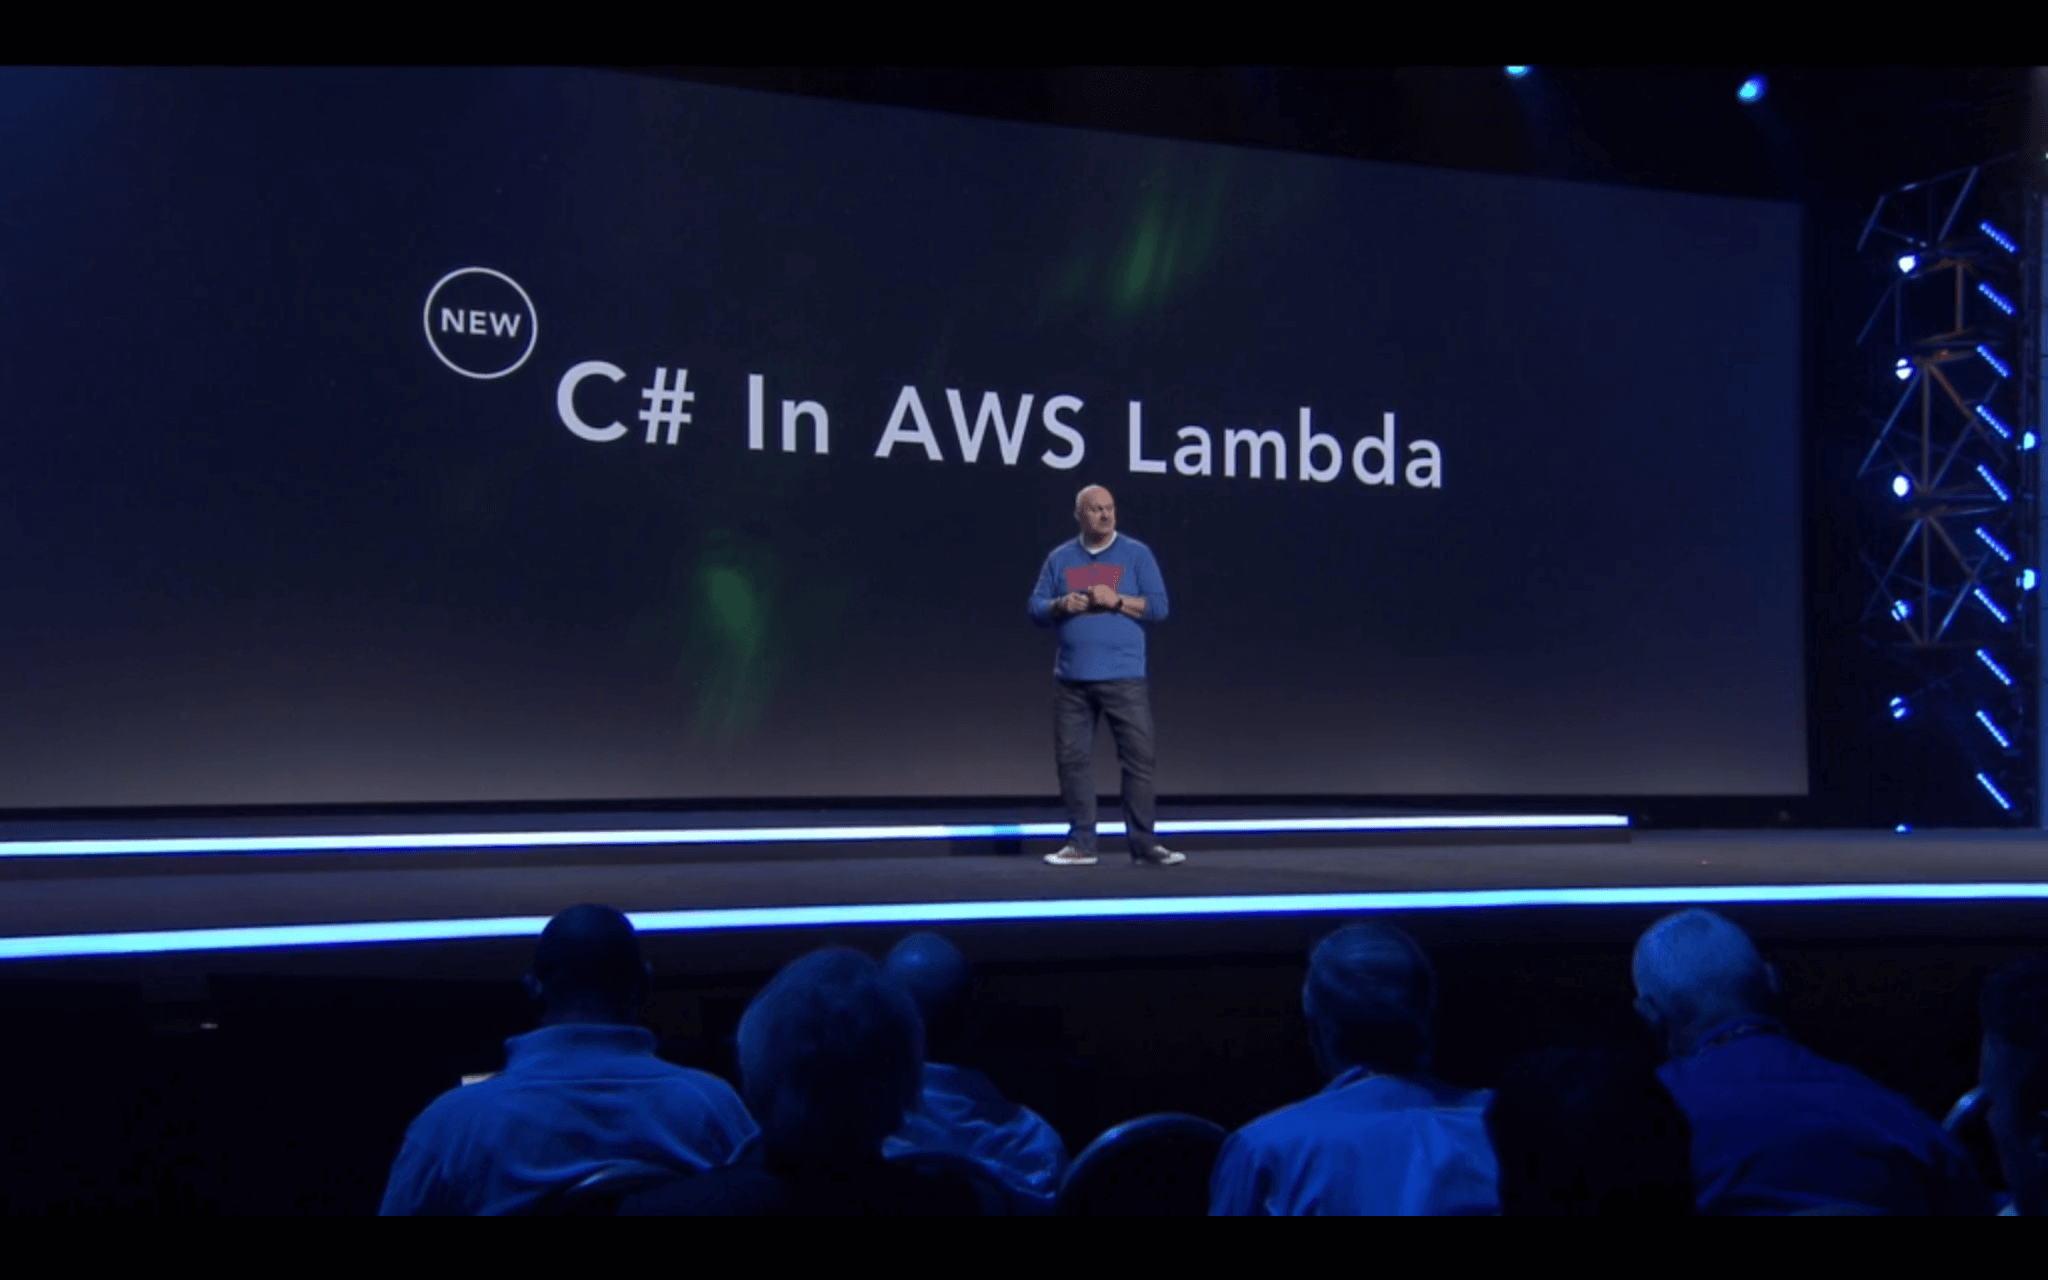 Amazon vice president and chief technology officer Werner Vogels talks about C# support in the AWS Lambda service at the AWS re:Invent conference in Las Vegas on December 1, 2016.